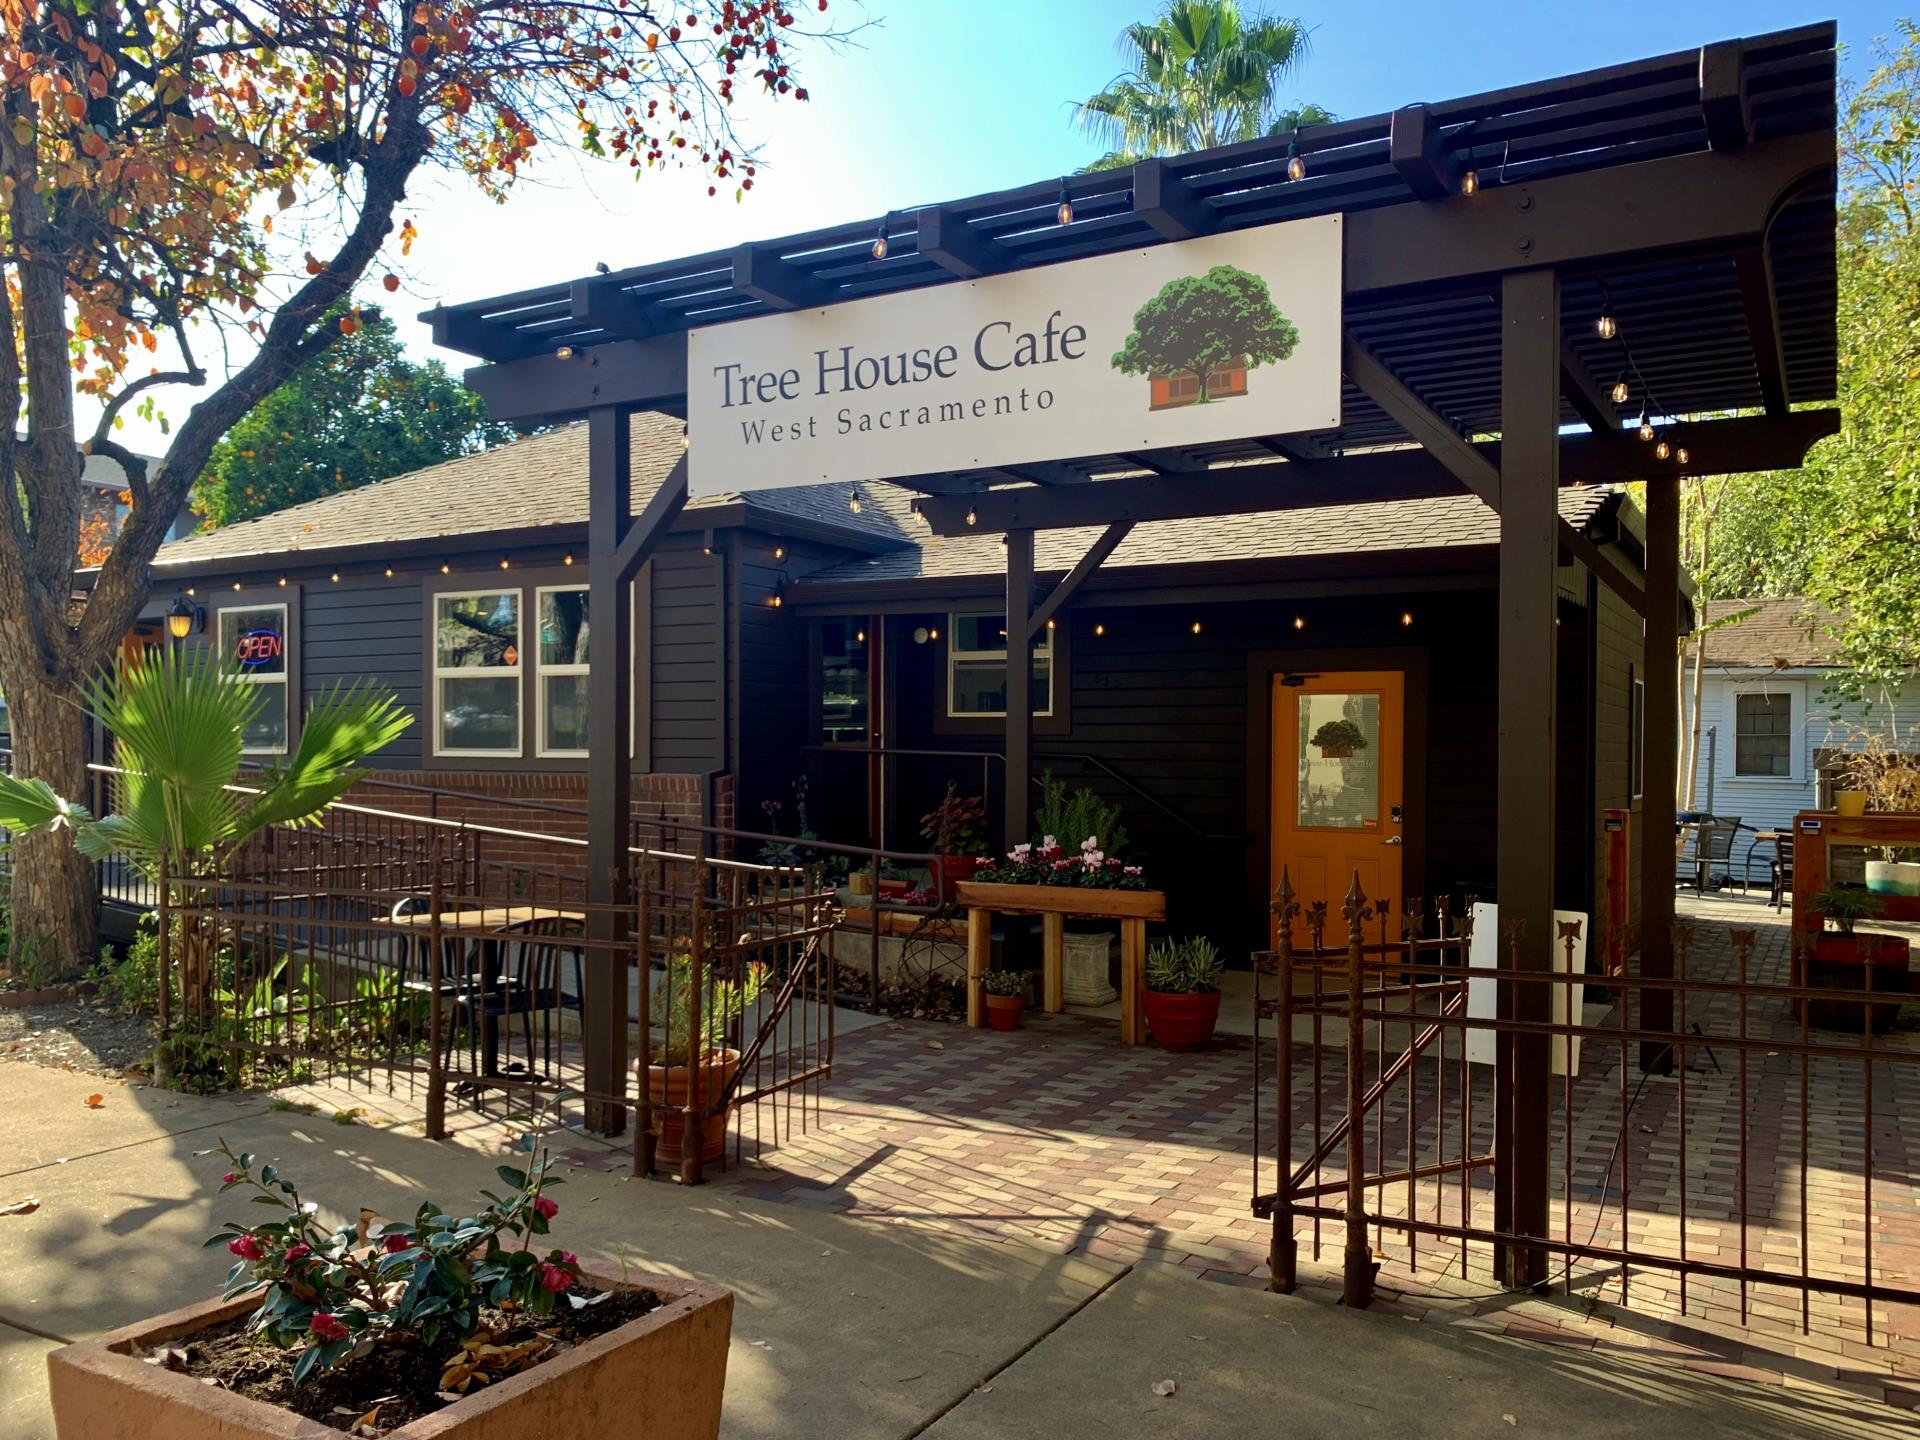 Tree House Cafe Ext 3 edit